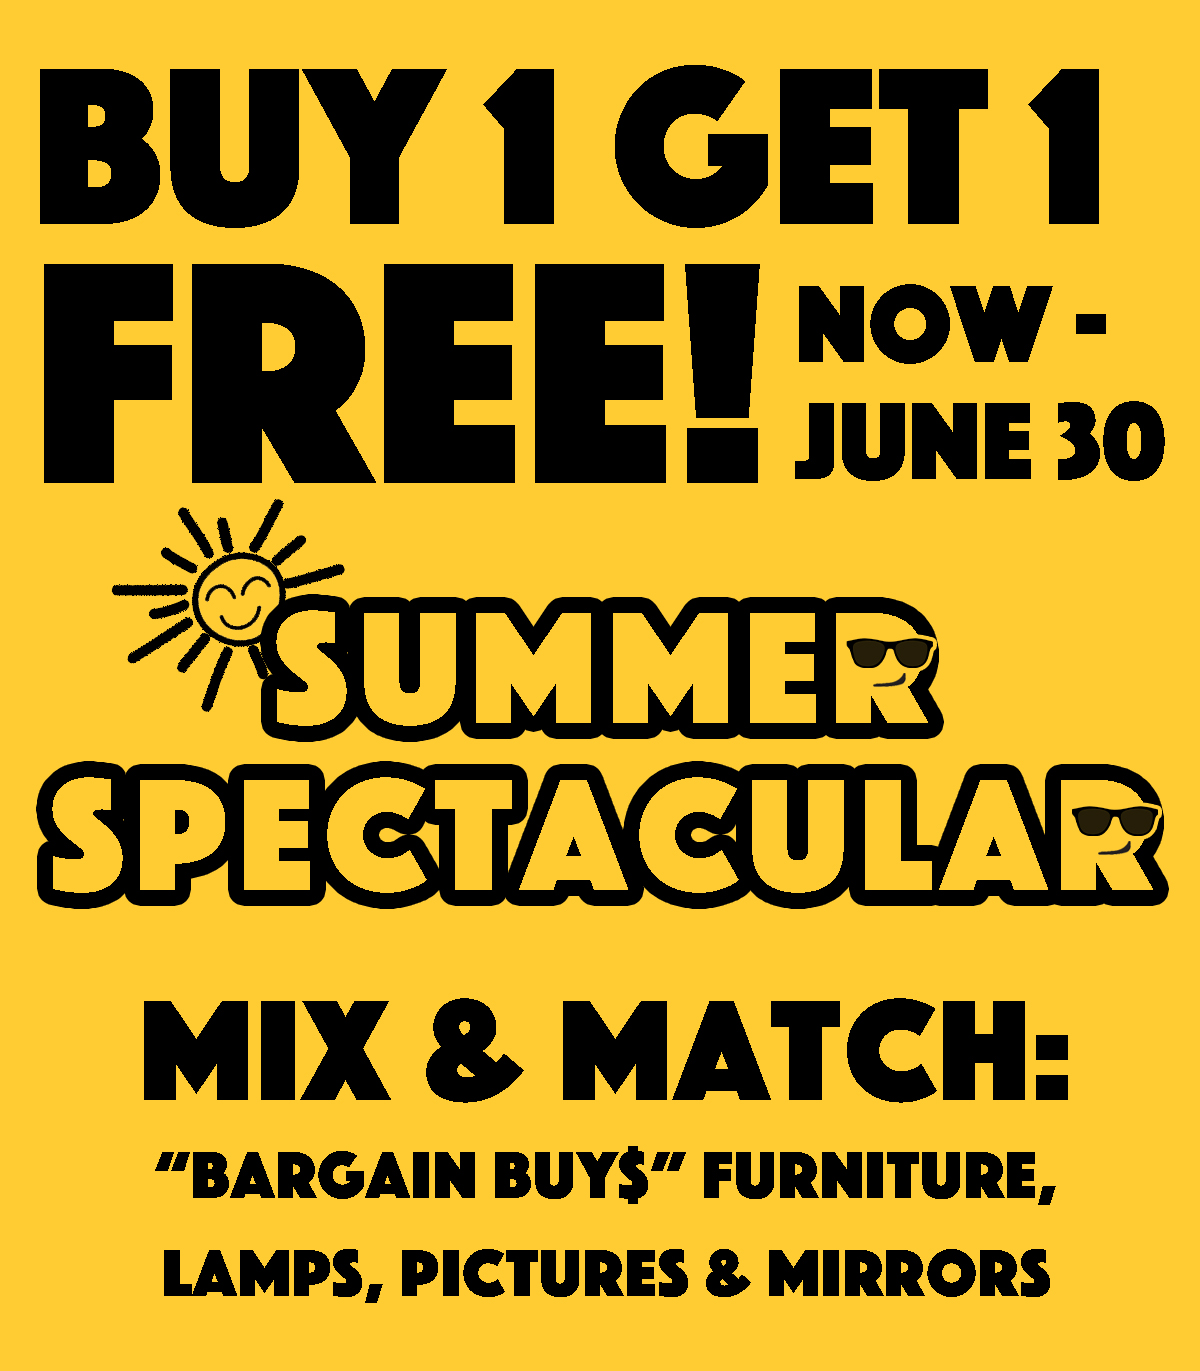 JUNE SALE - Buy 1 Get 1 FREE!